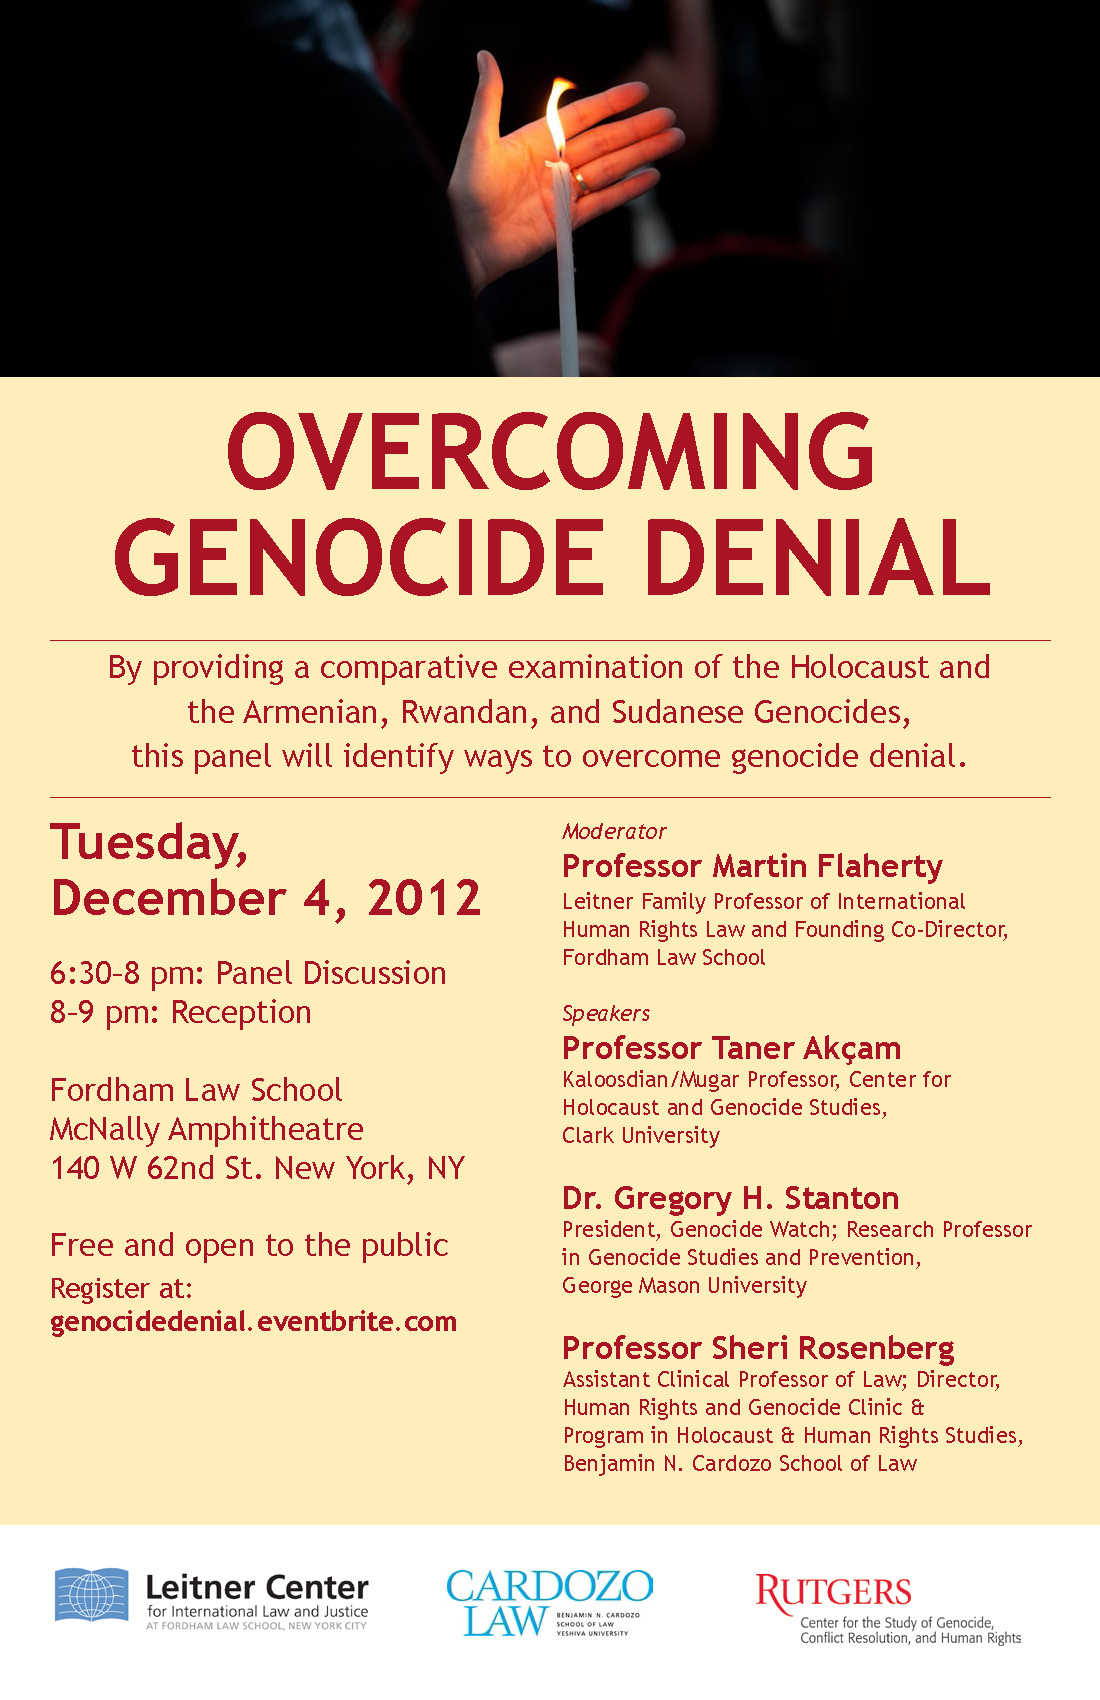 Overcoming Genocide Denial poster_Dec 4 at Fordham Law School, 6:30 pm